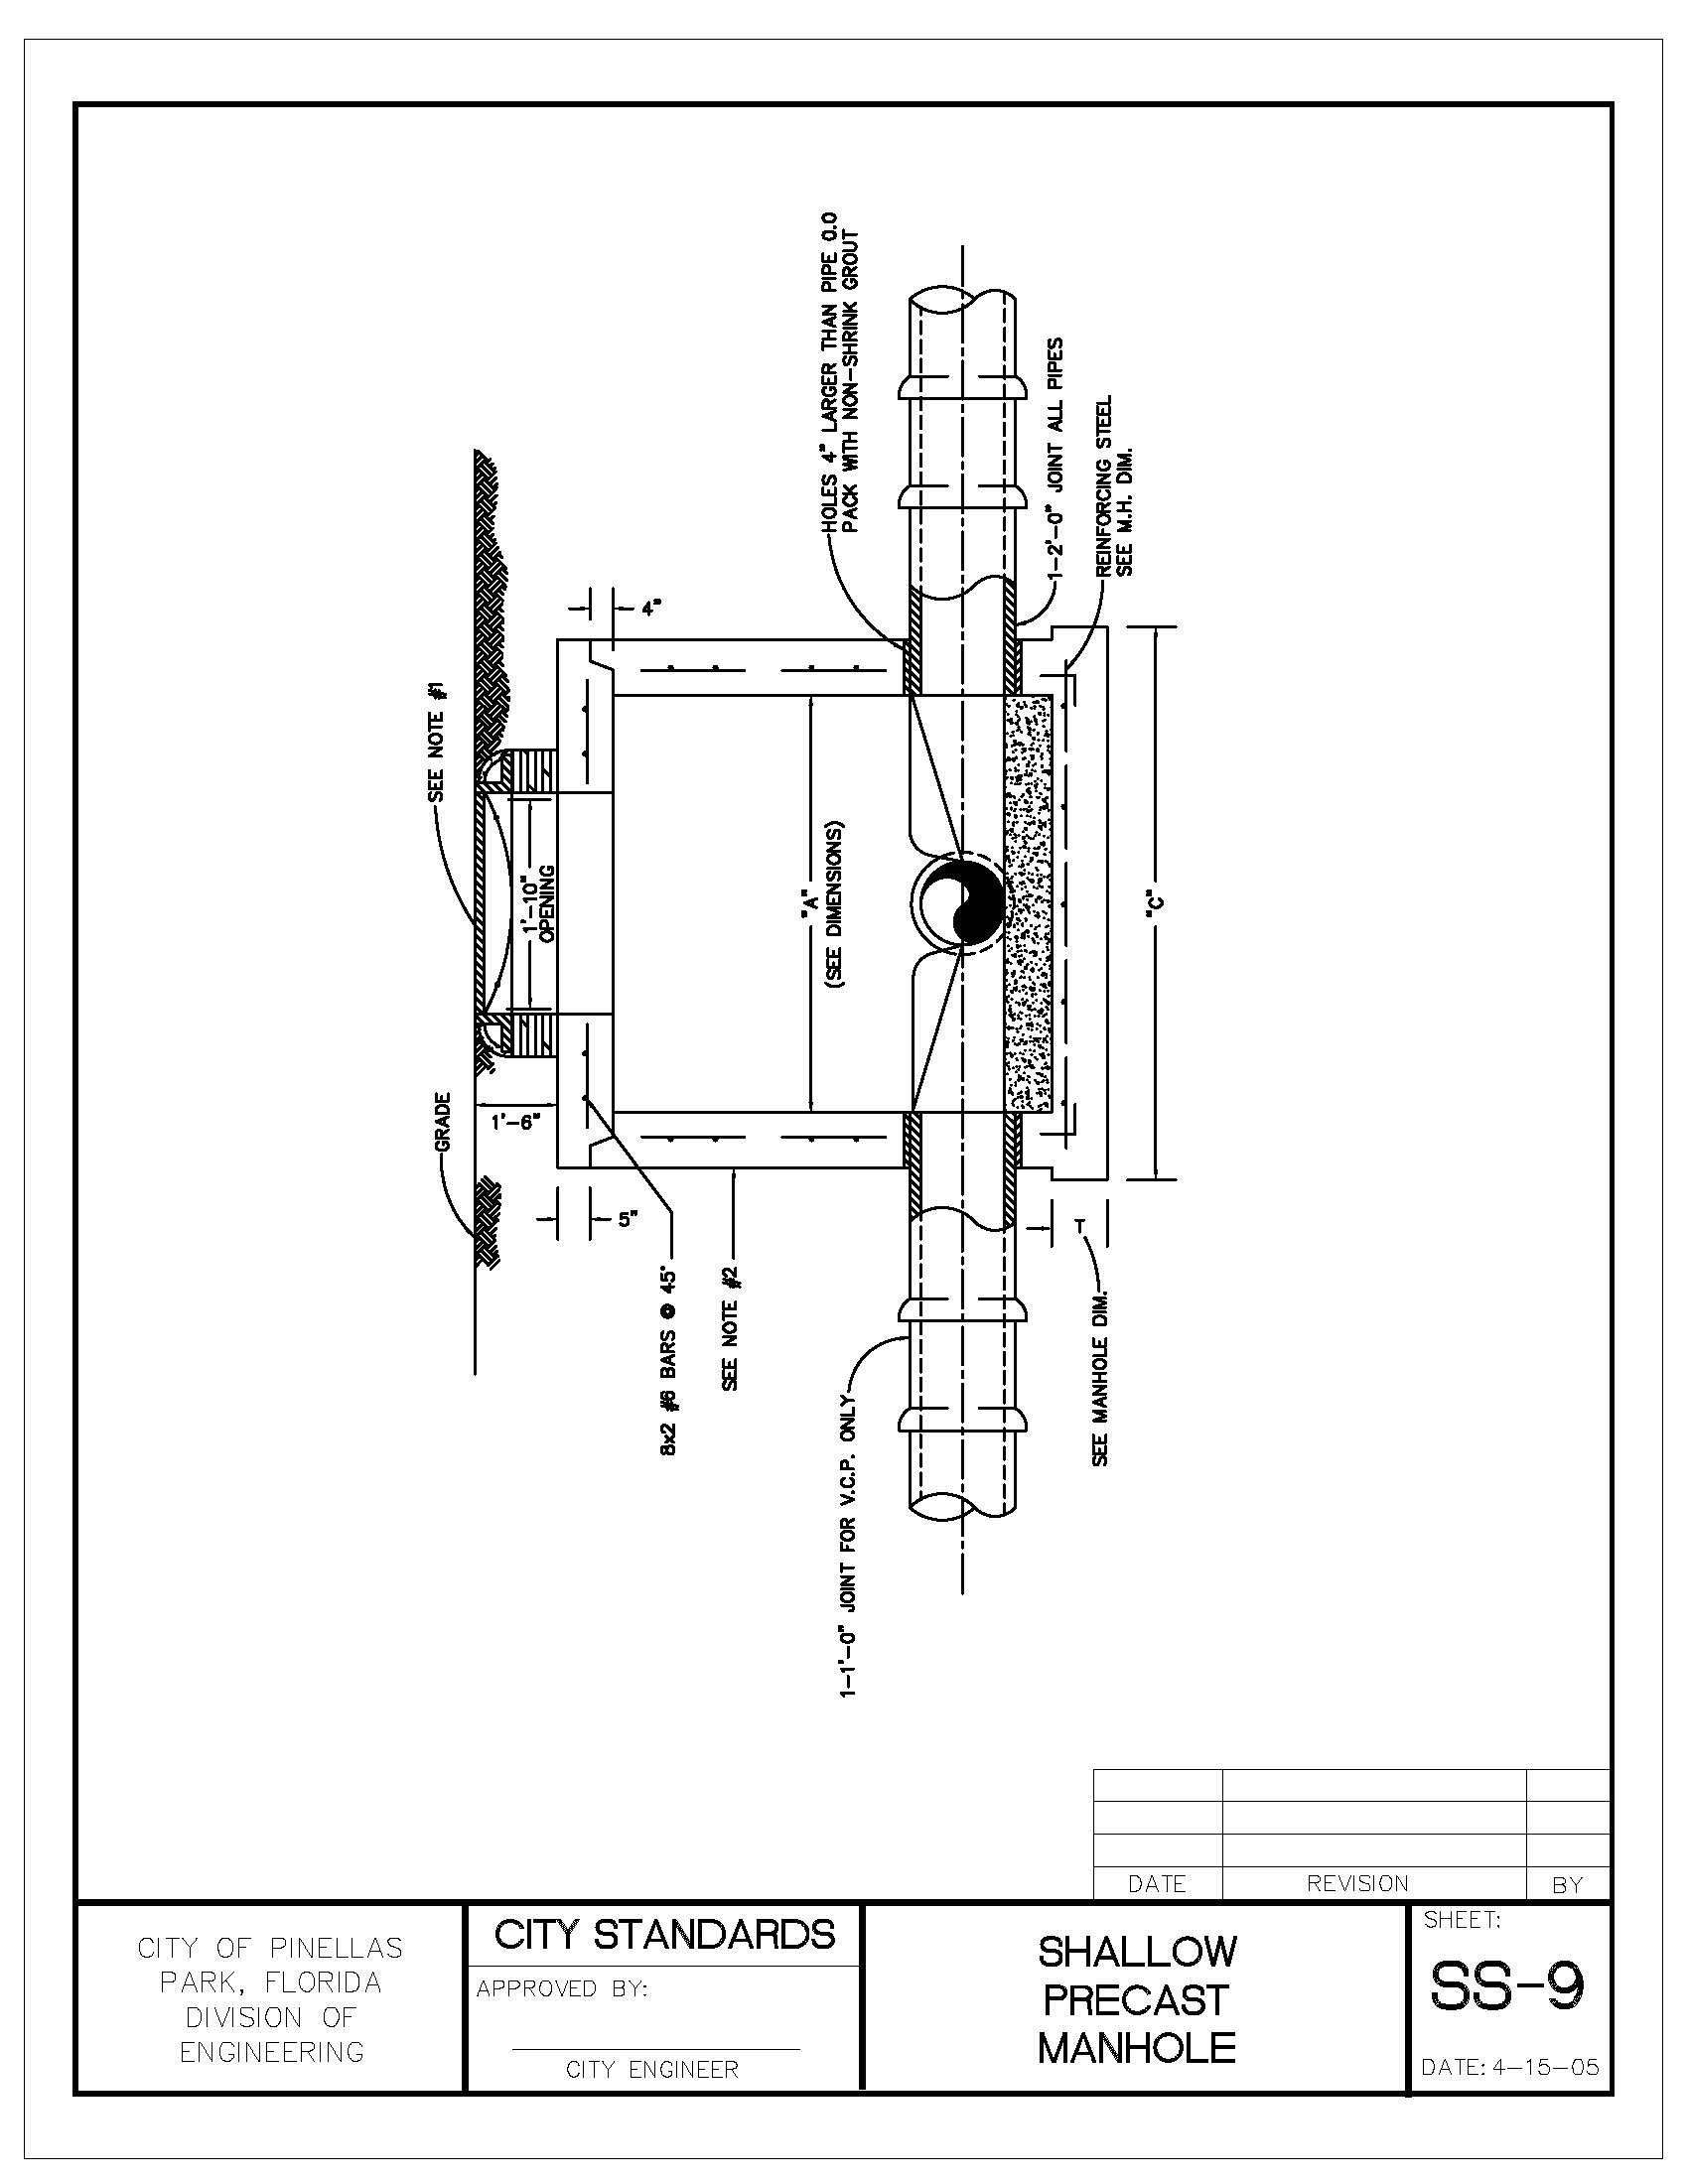 Engineering Manual v5_201908121127291138_Page_073 shallow precast manhole